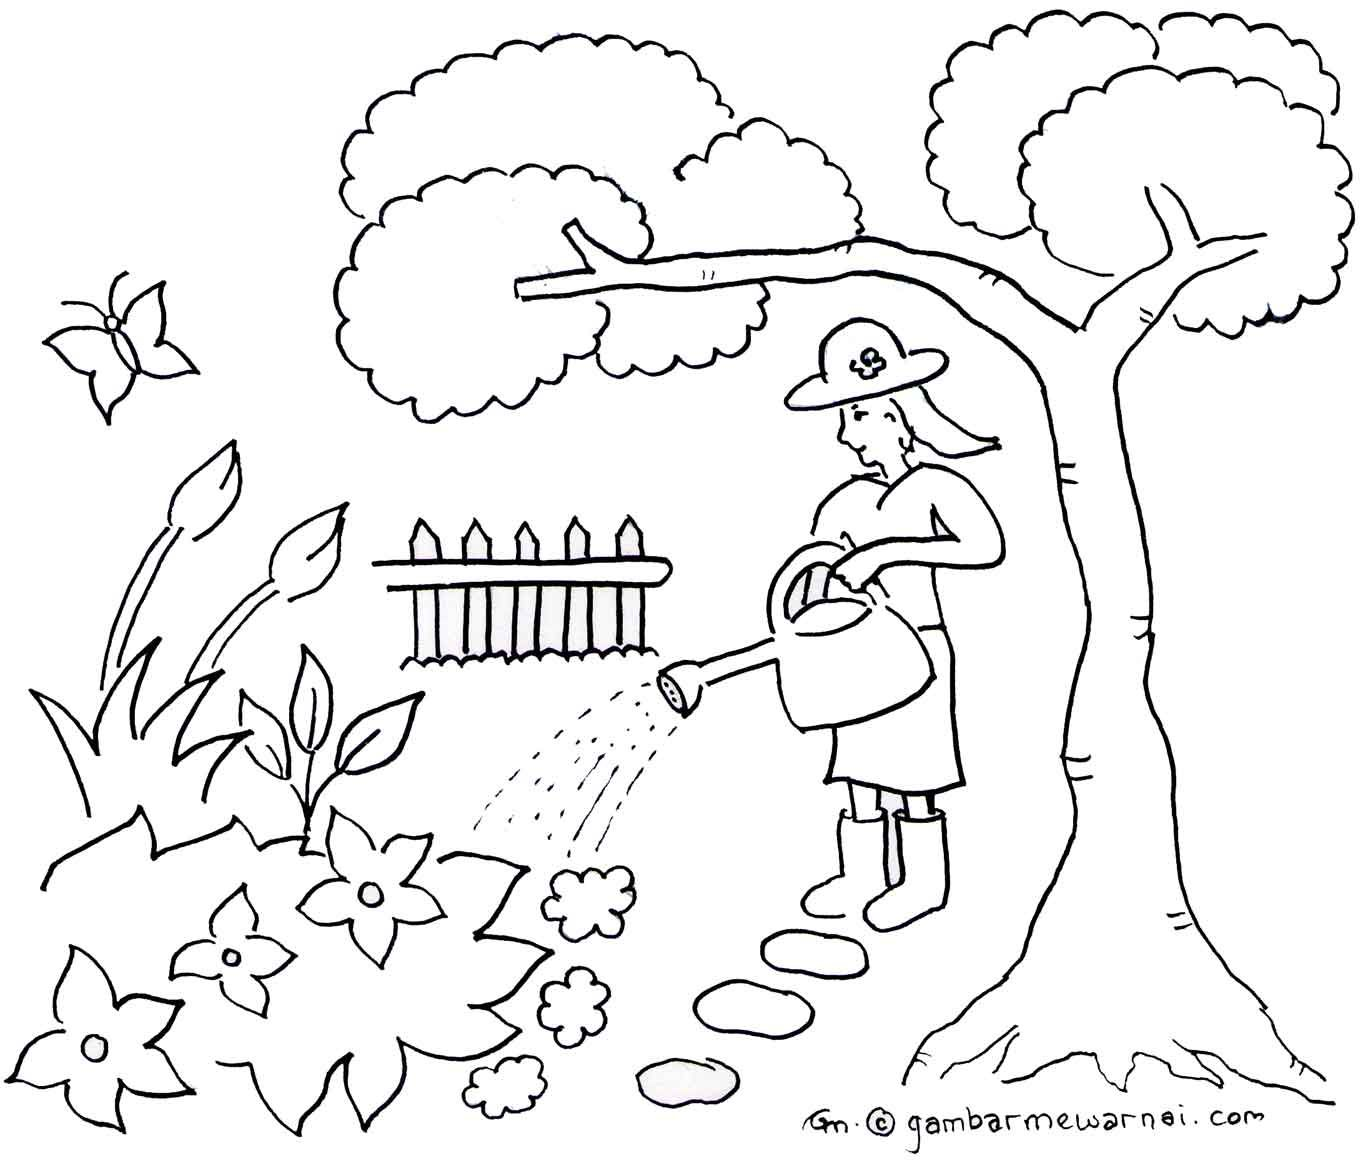 Mewarnai Taman Bunga Iman Coloring Pages For Kids Art Art For Kids